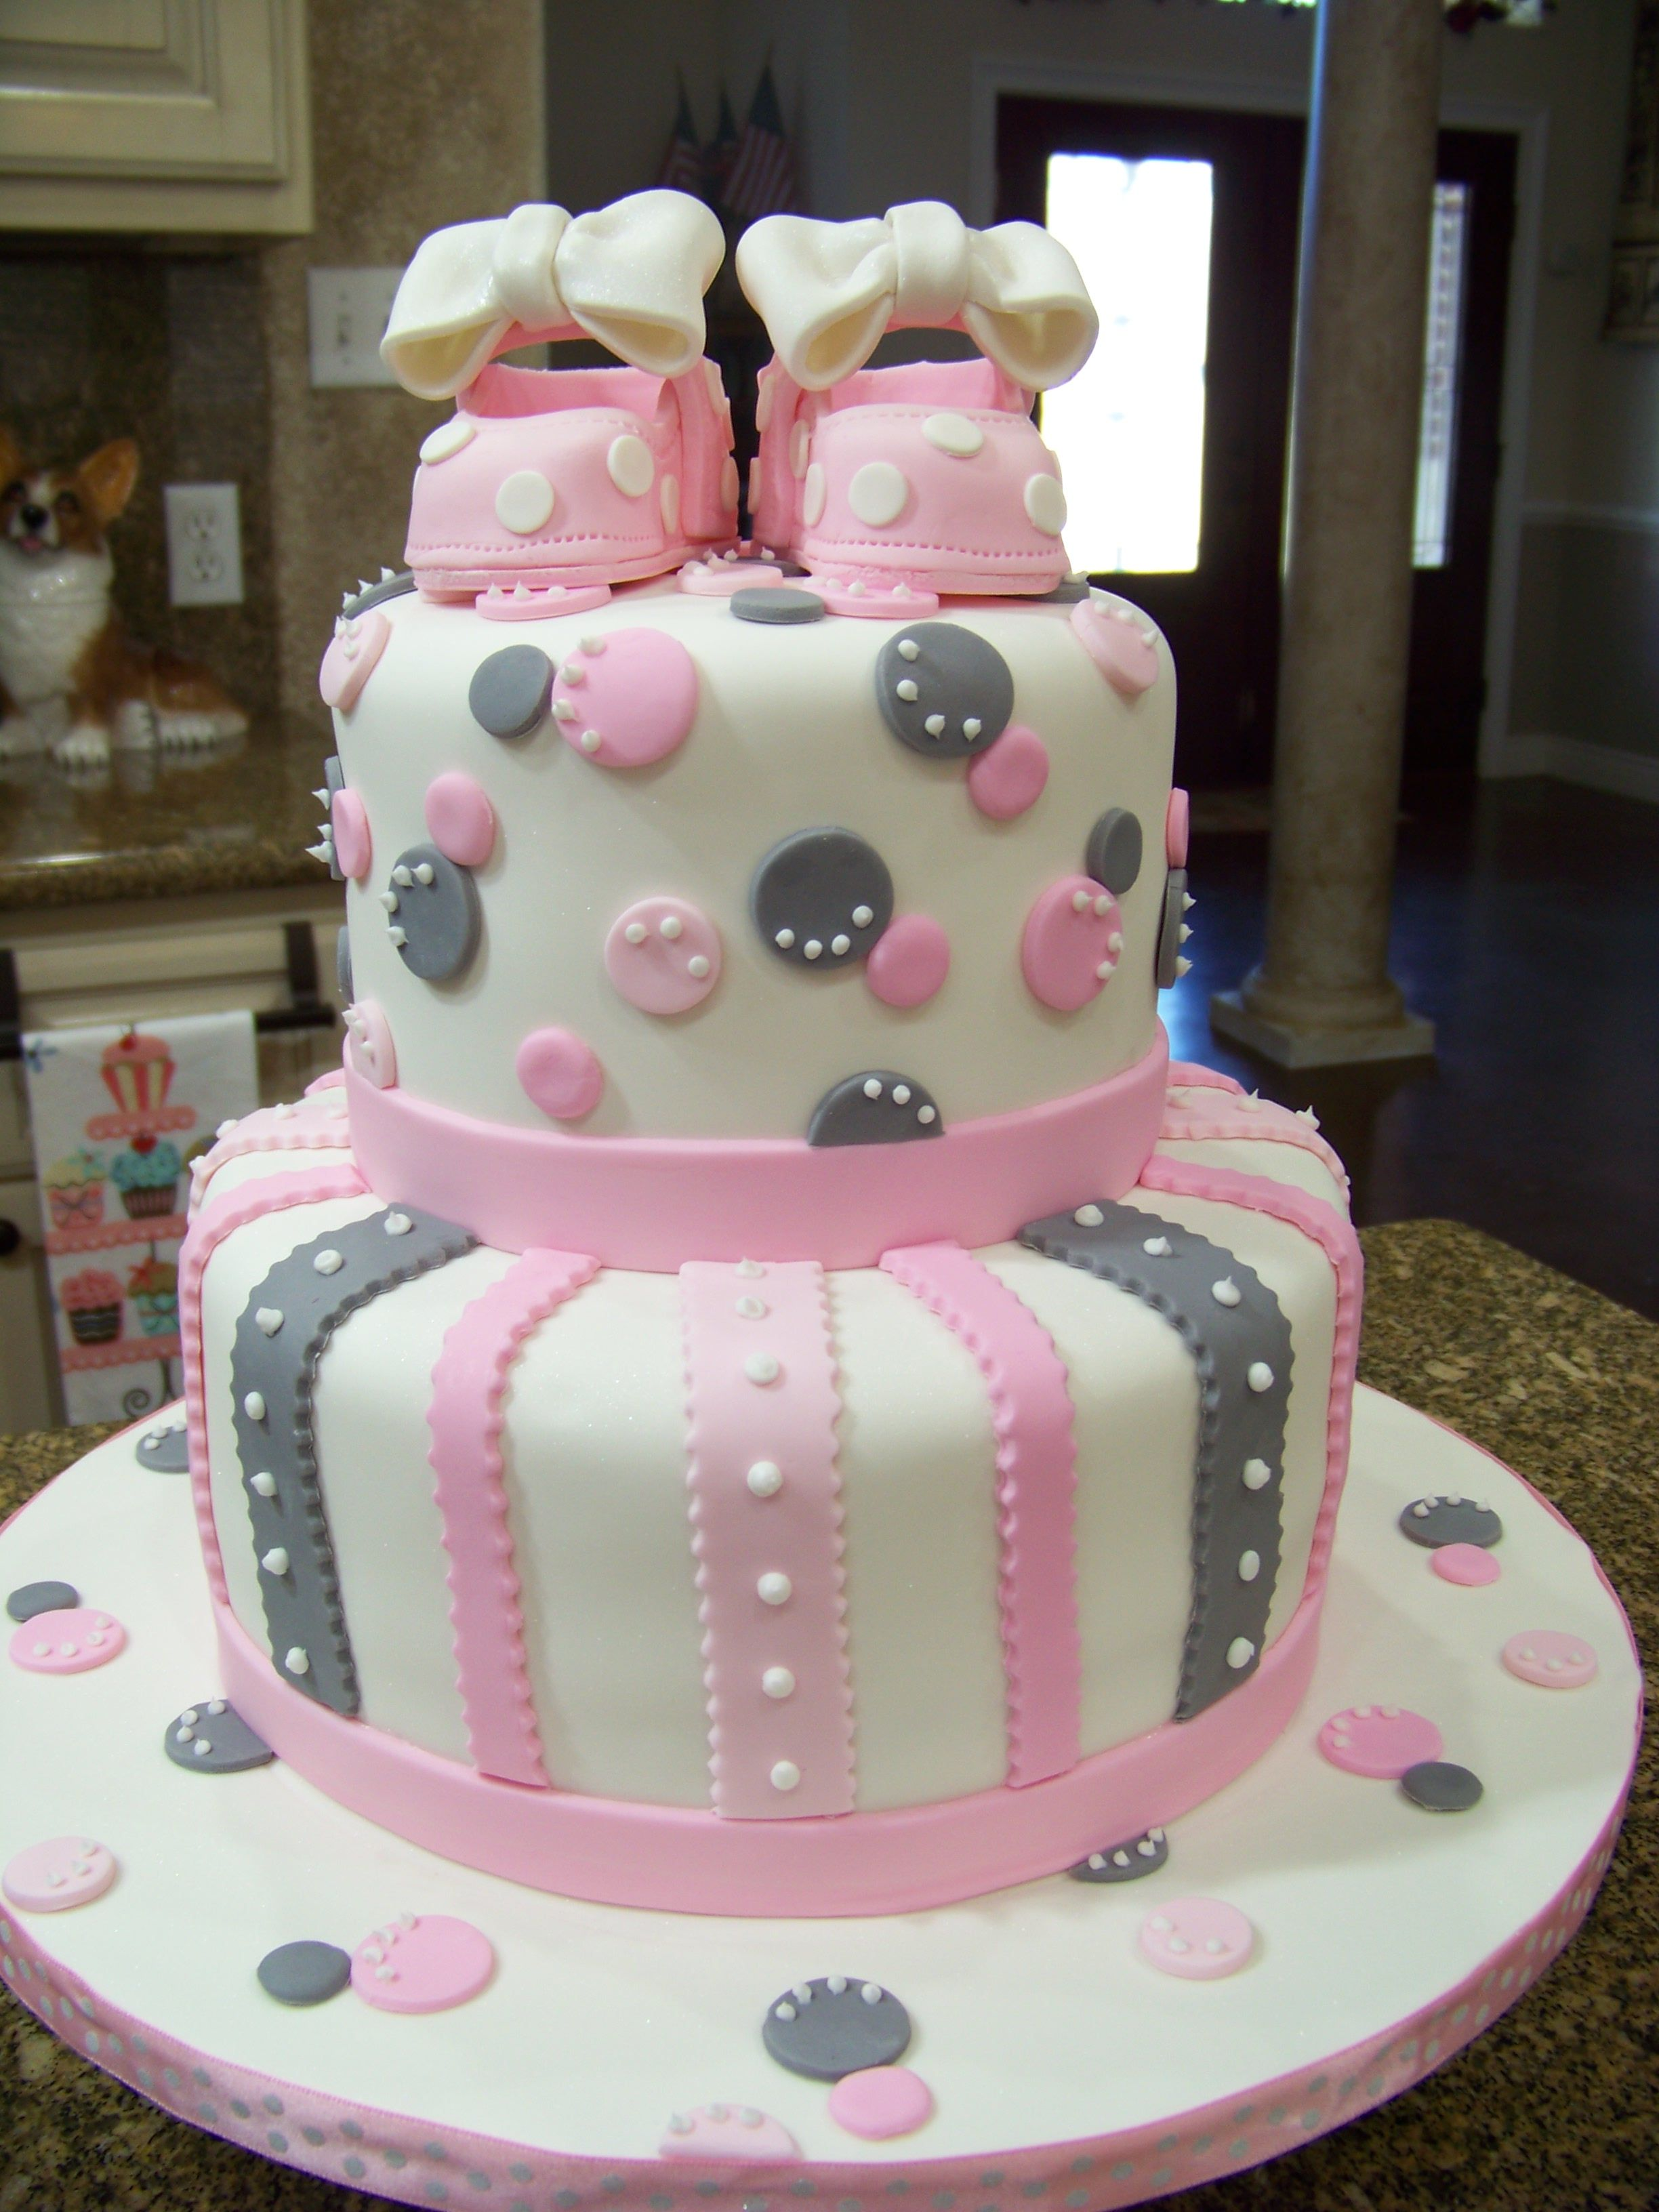 Pink & Gray baby shower cake Vanilla cake bc icing covered in